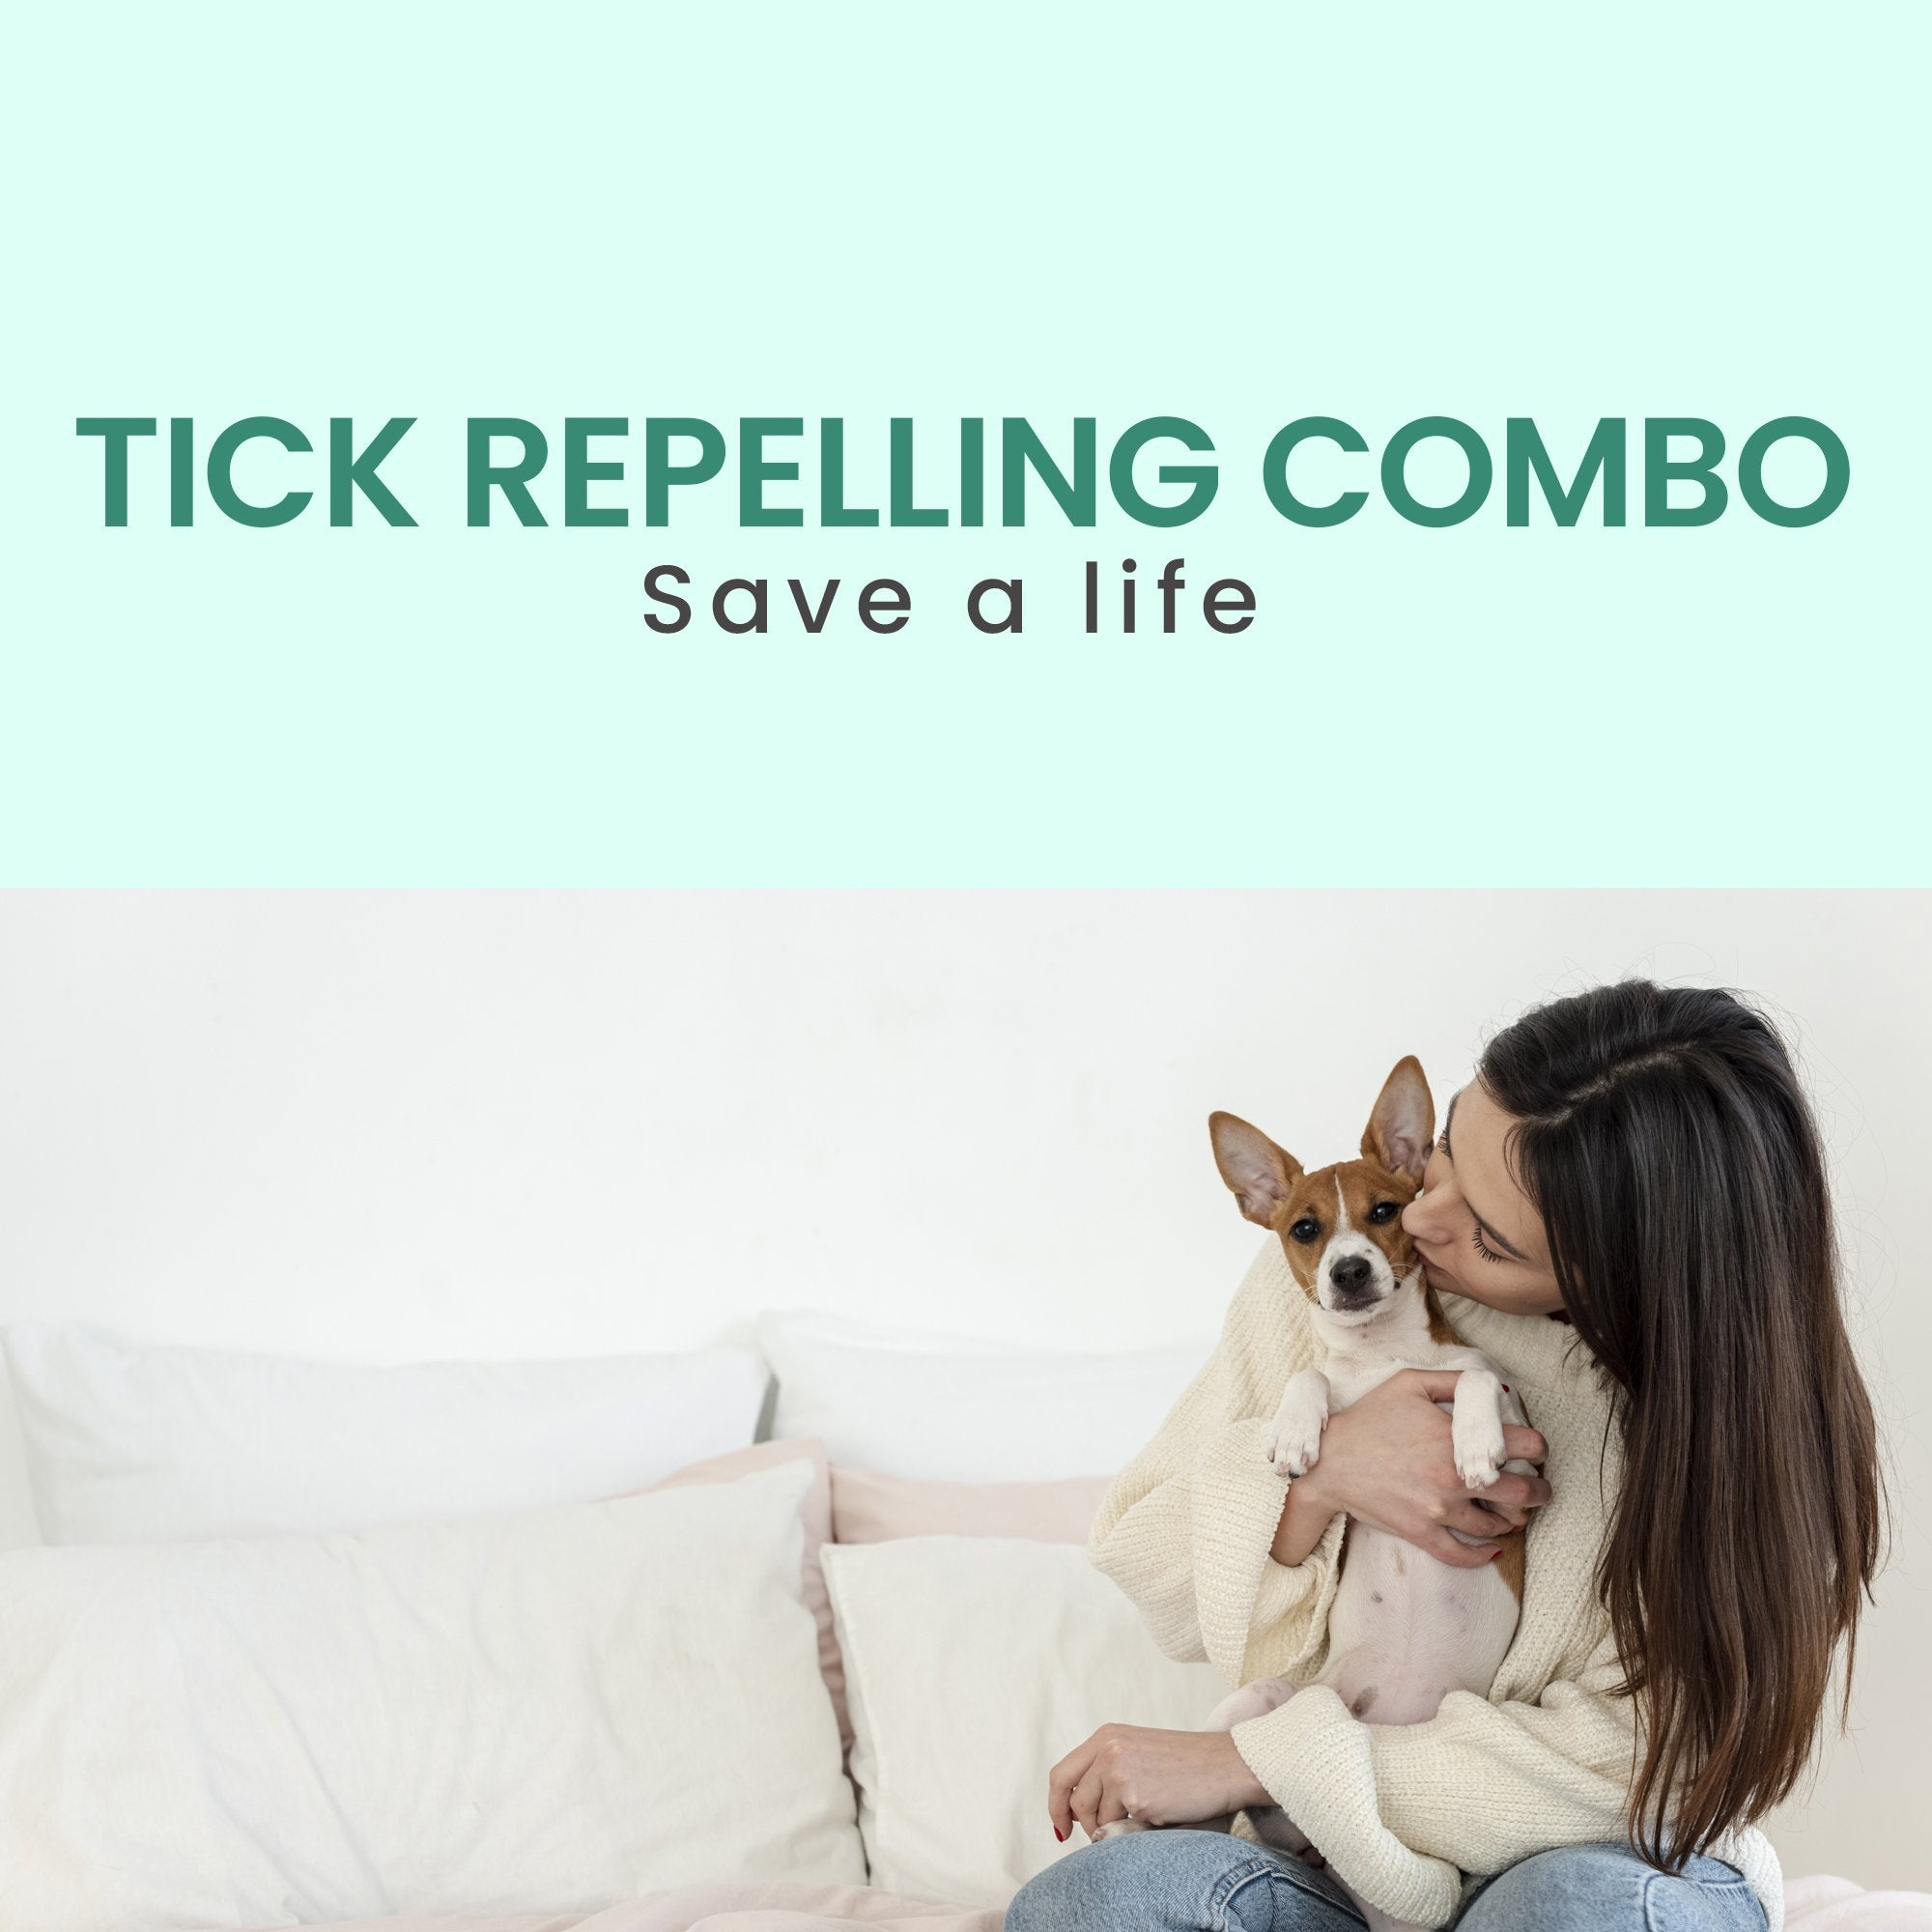 Tick Repelling Combo